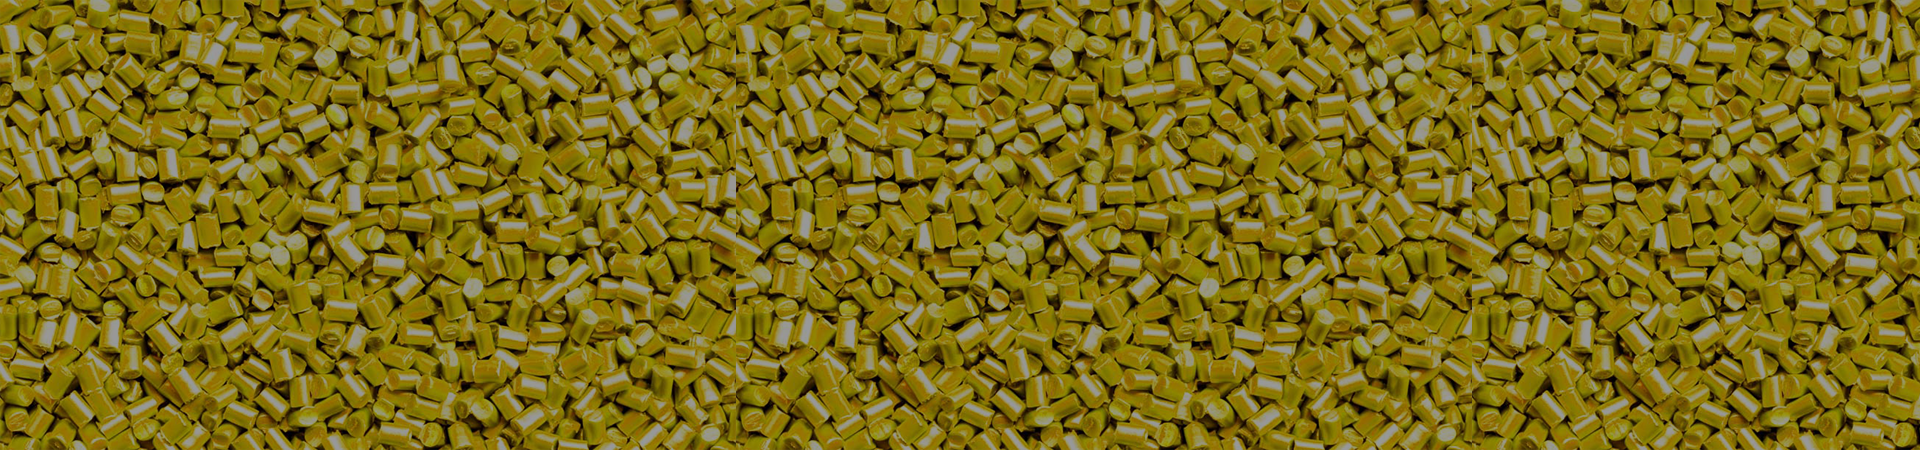 yellow catalyst pellets